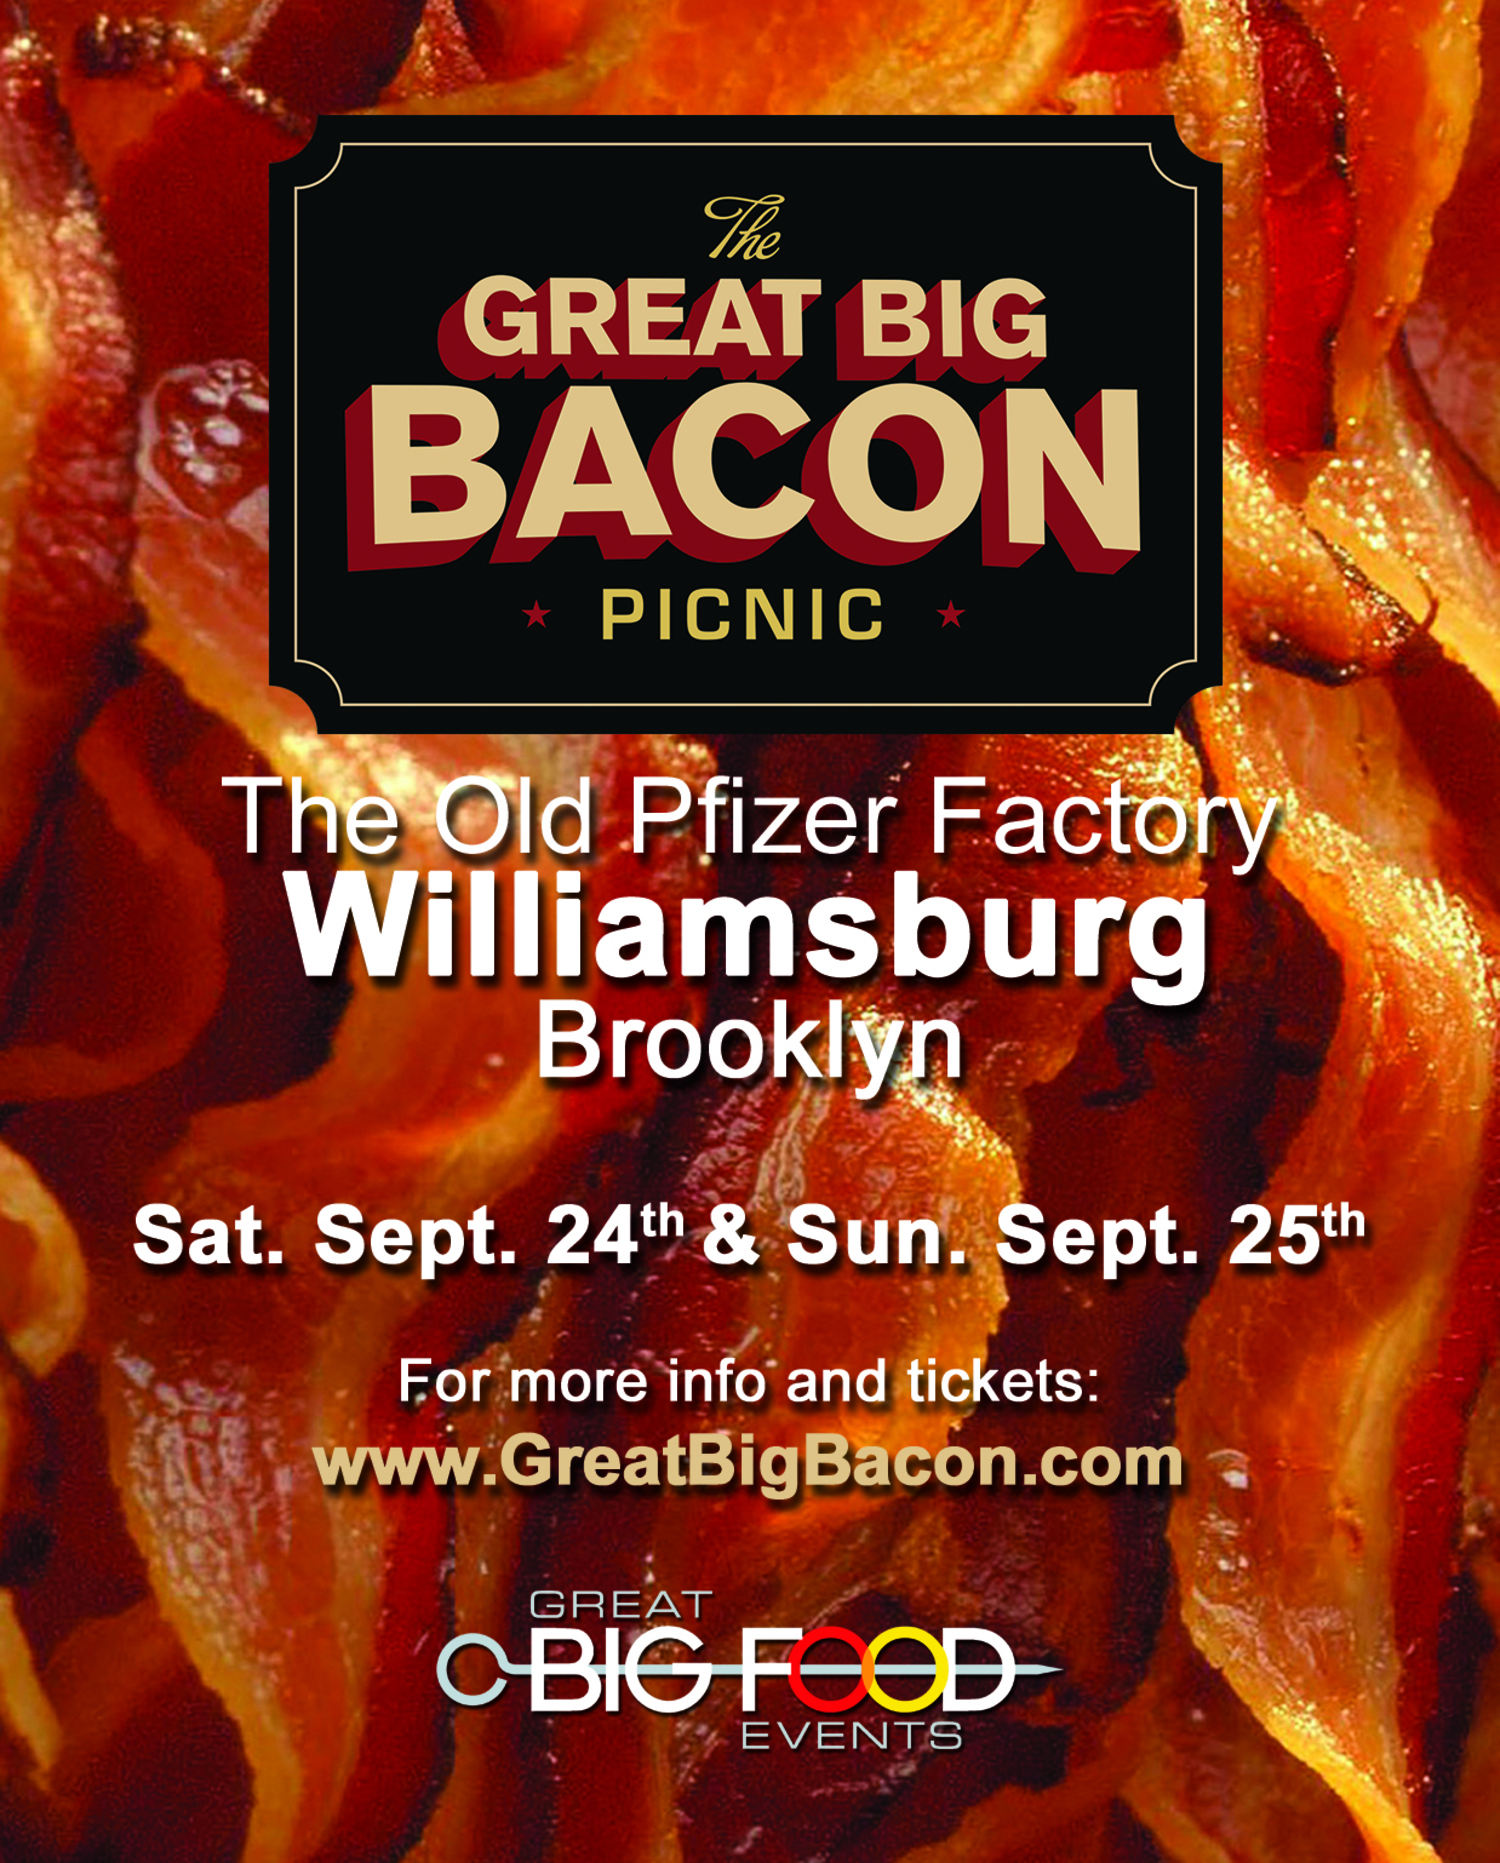 The Great Big Bacon Picnic 2016